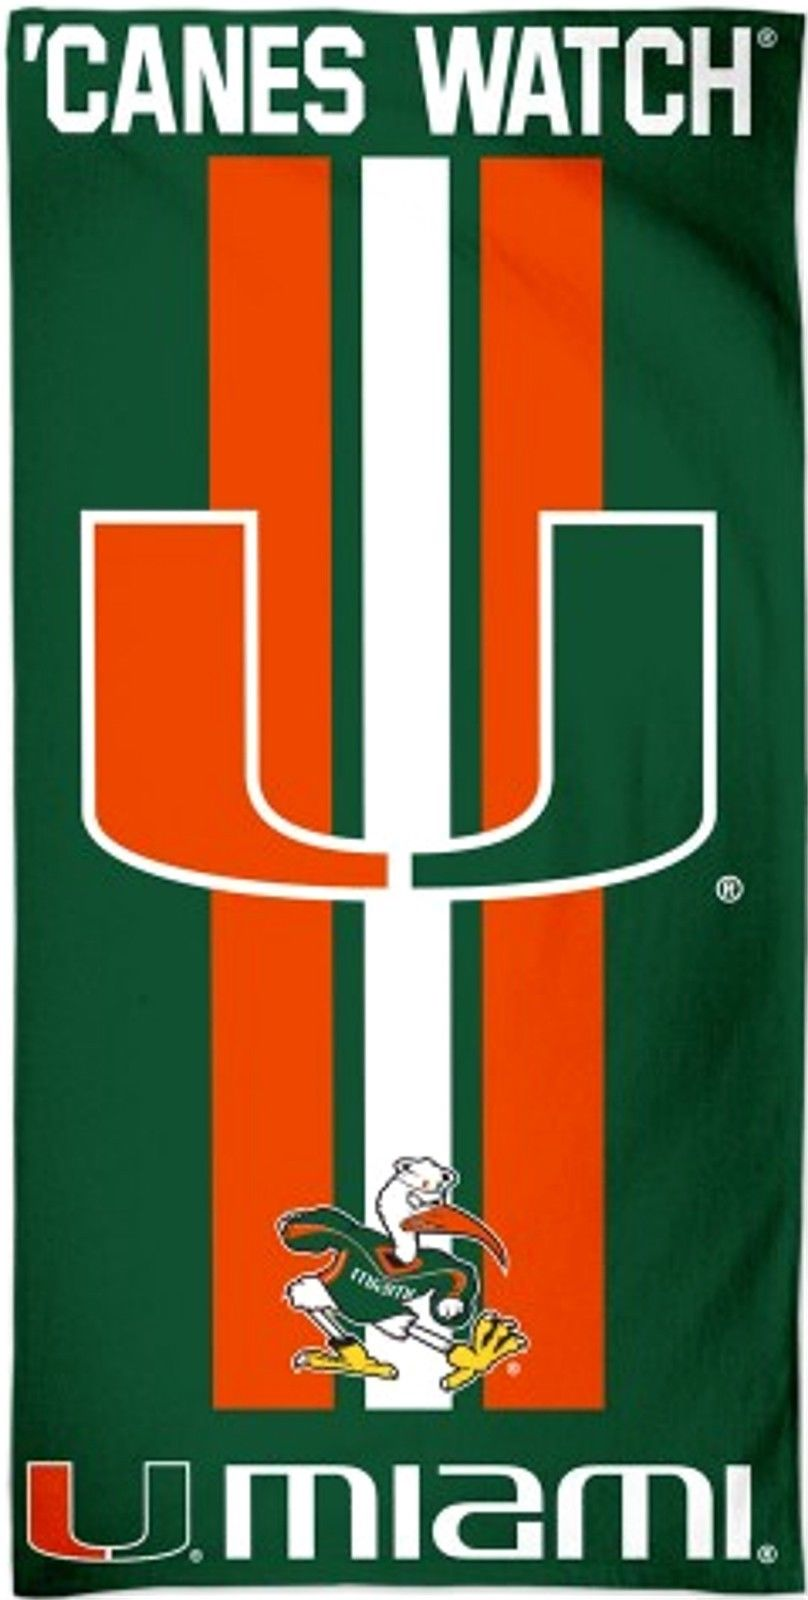 Miami Hurricanes Beach Towel 'Canes Watch